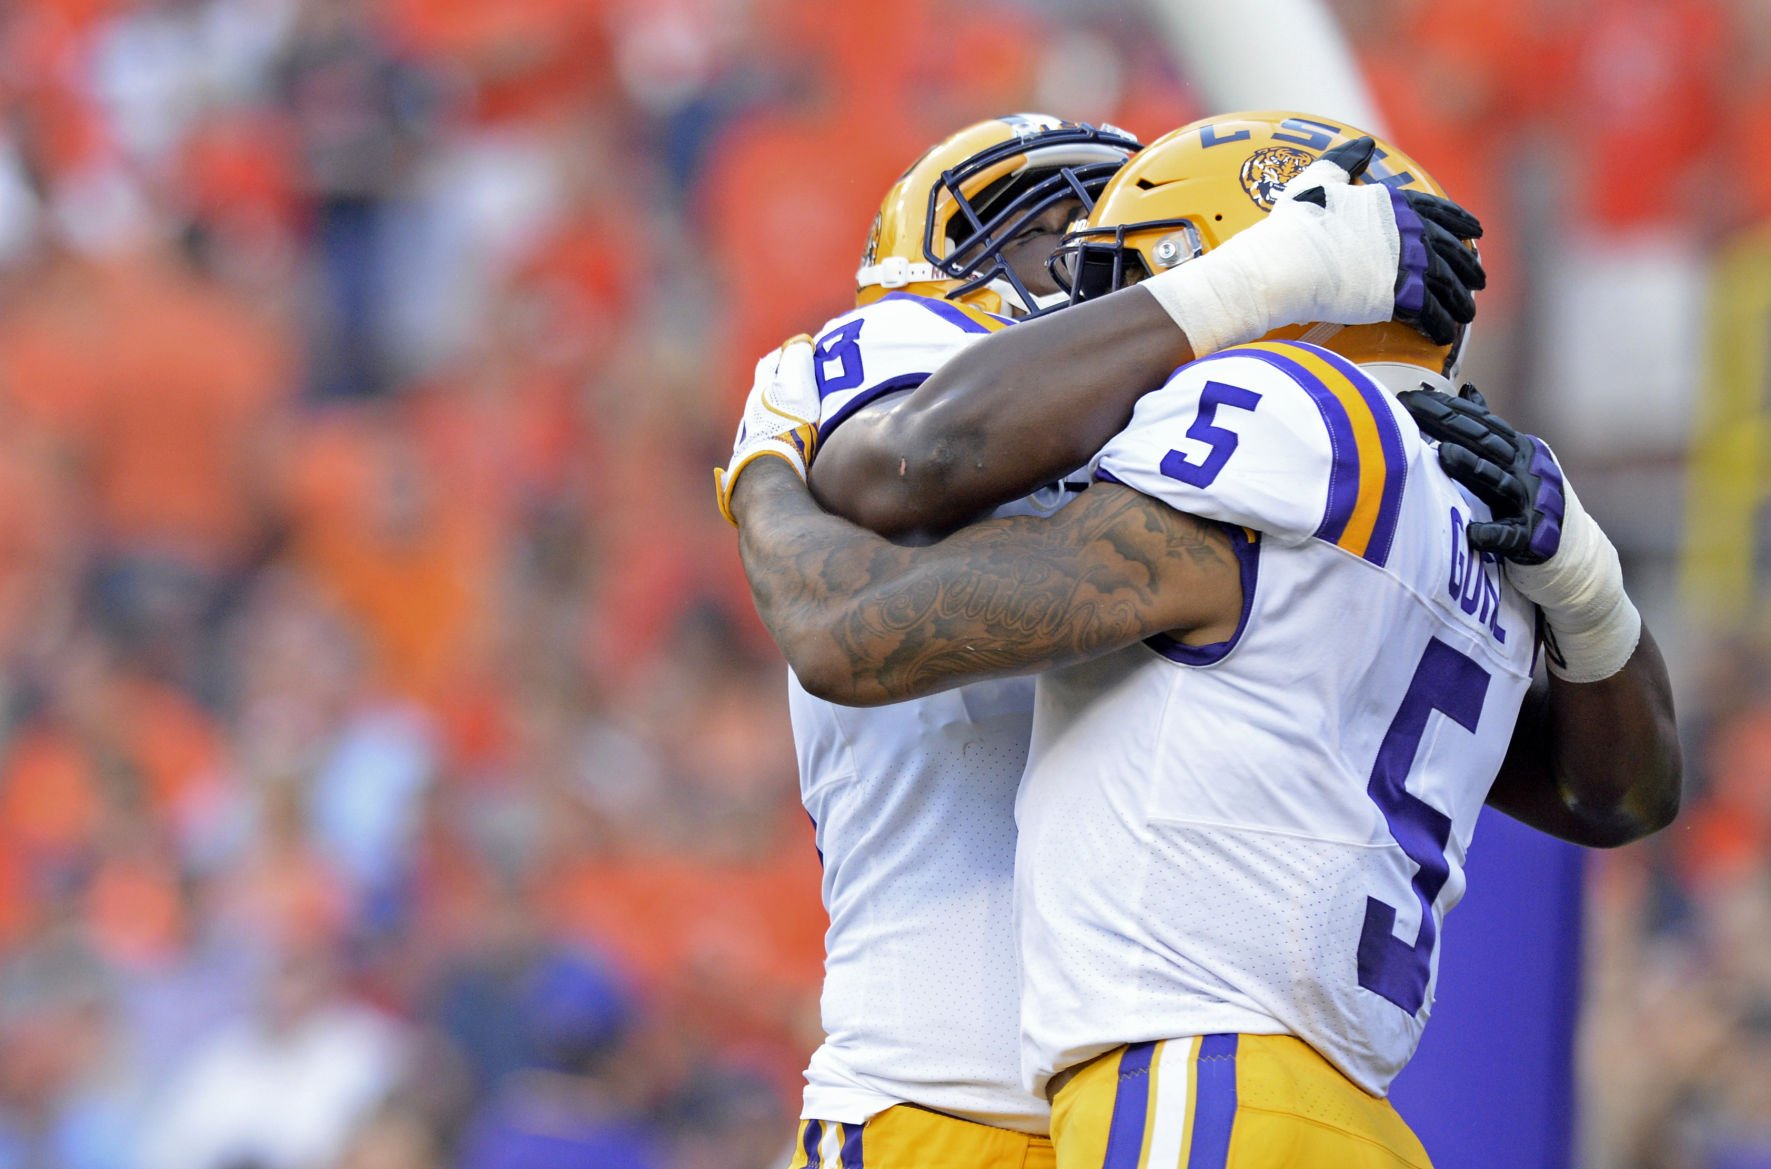 LSU loses homecoming game to Troy, 24-21